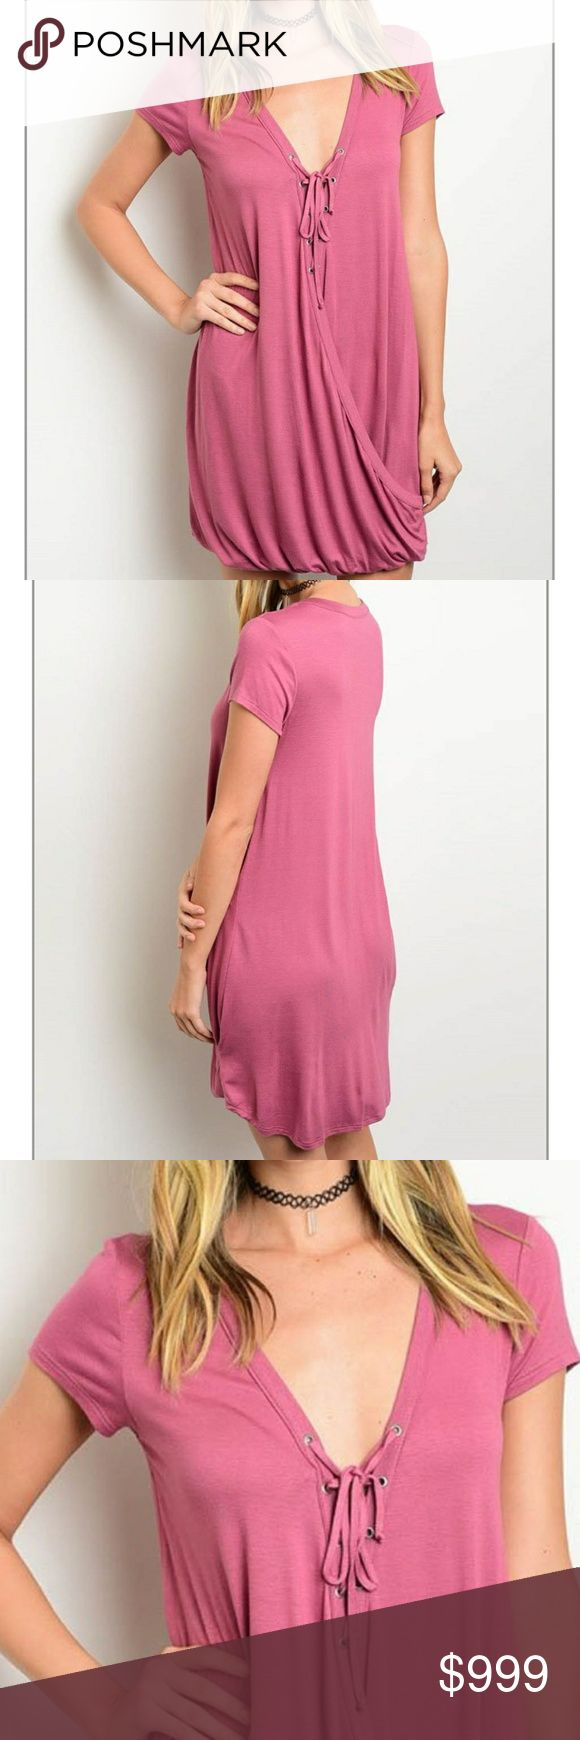 """dusty pink dress lovely dusty pink colored mini. gathered bottom hem with tie-up neckline. TTS, relaxed, super soft jersey knit feel, stretchy. brand new from wholesale and never worn. 95% rayon 5% spandex. about 33"""" long from shoulder. no trades.  S - bust stretches across from about 17""""-23"""" M - 18.5"""" - 24""""  08750 Dresses Mini"""